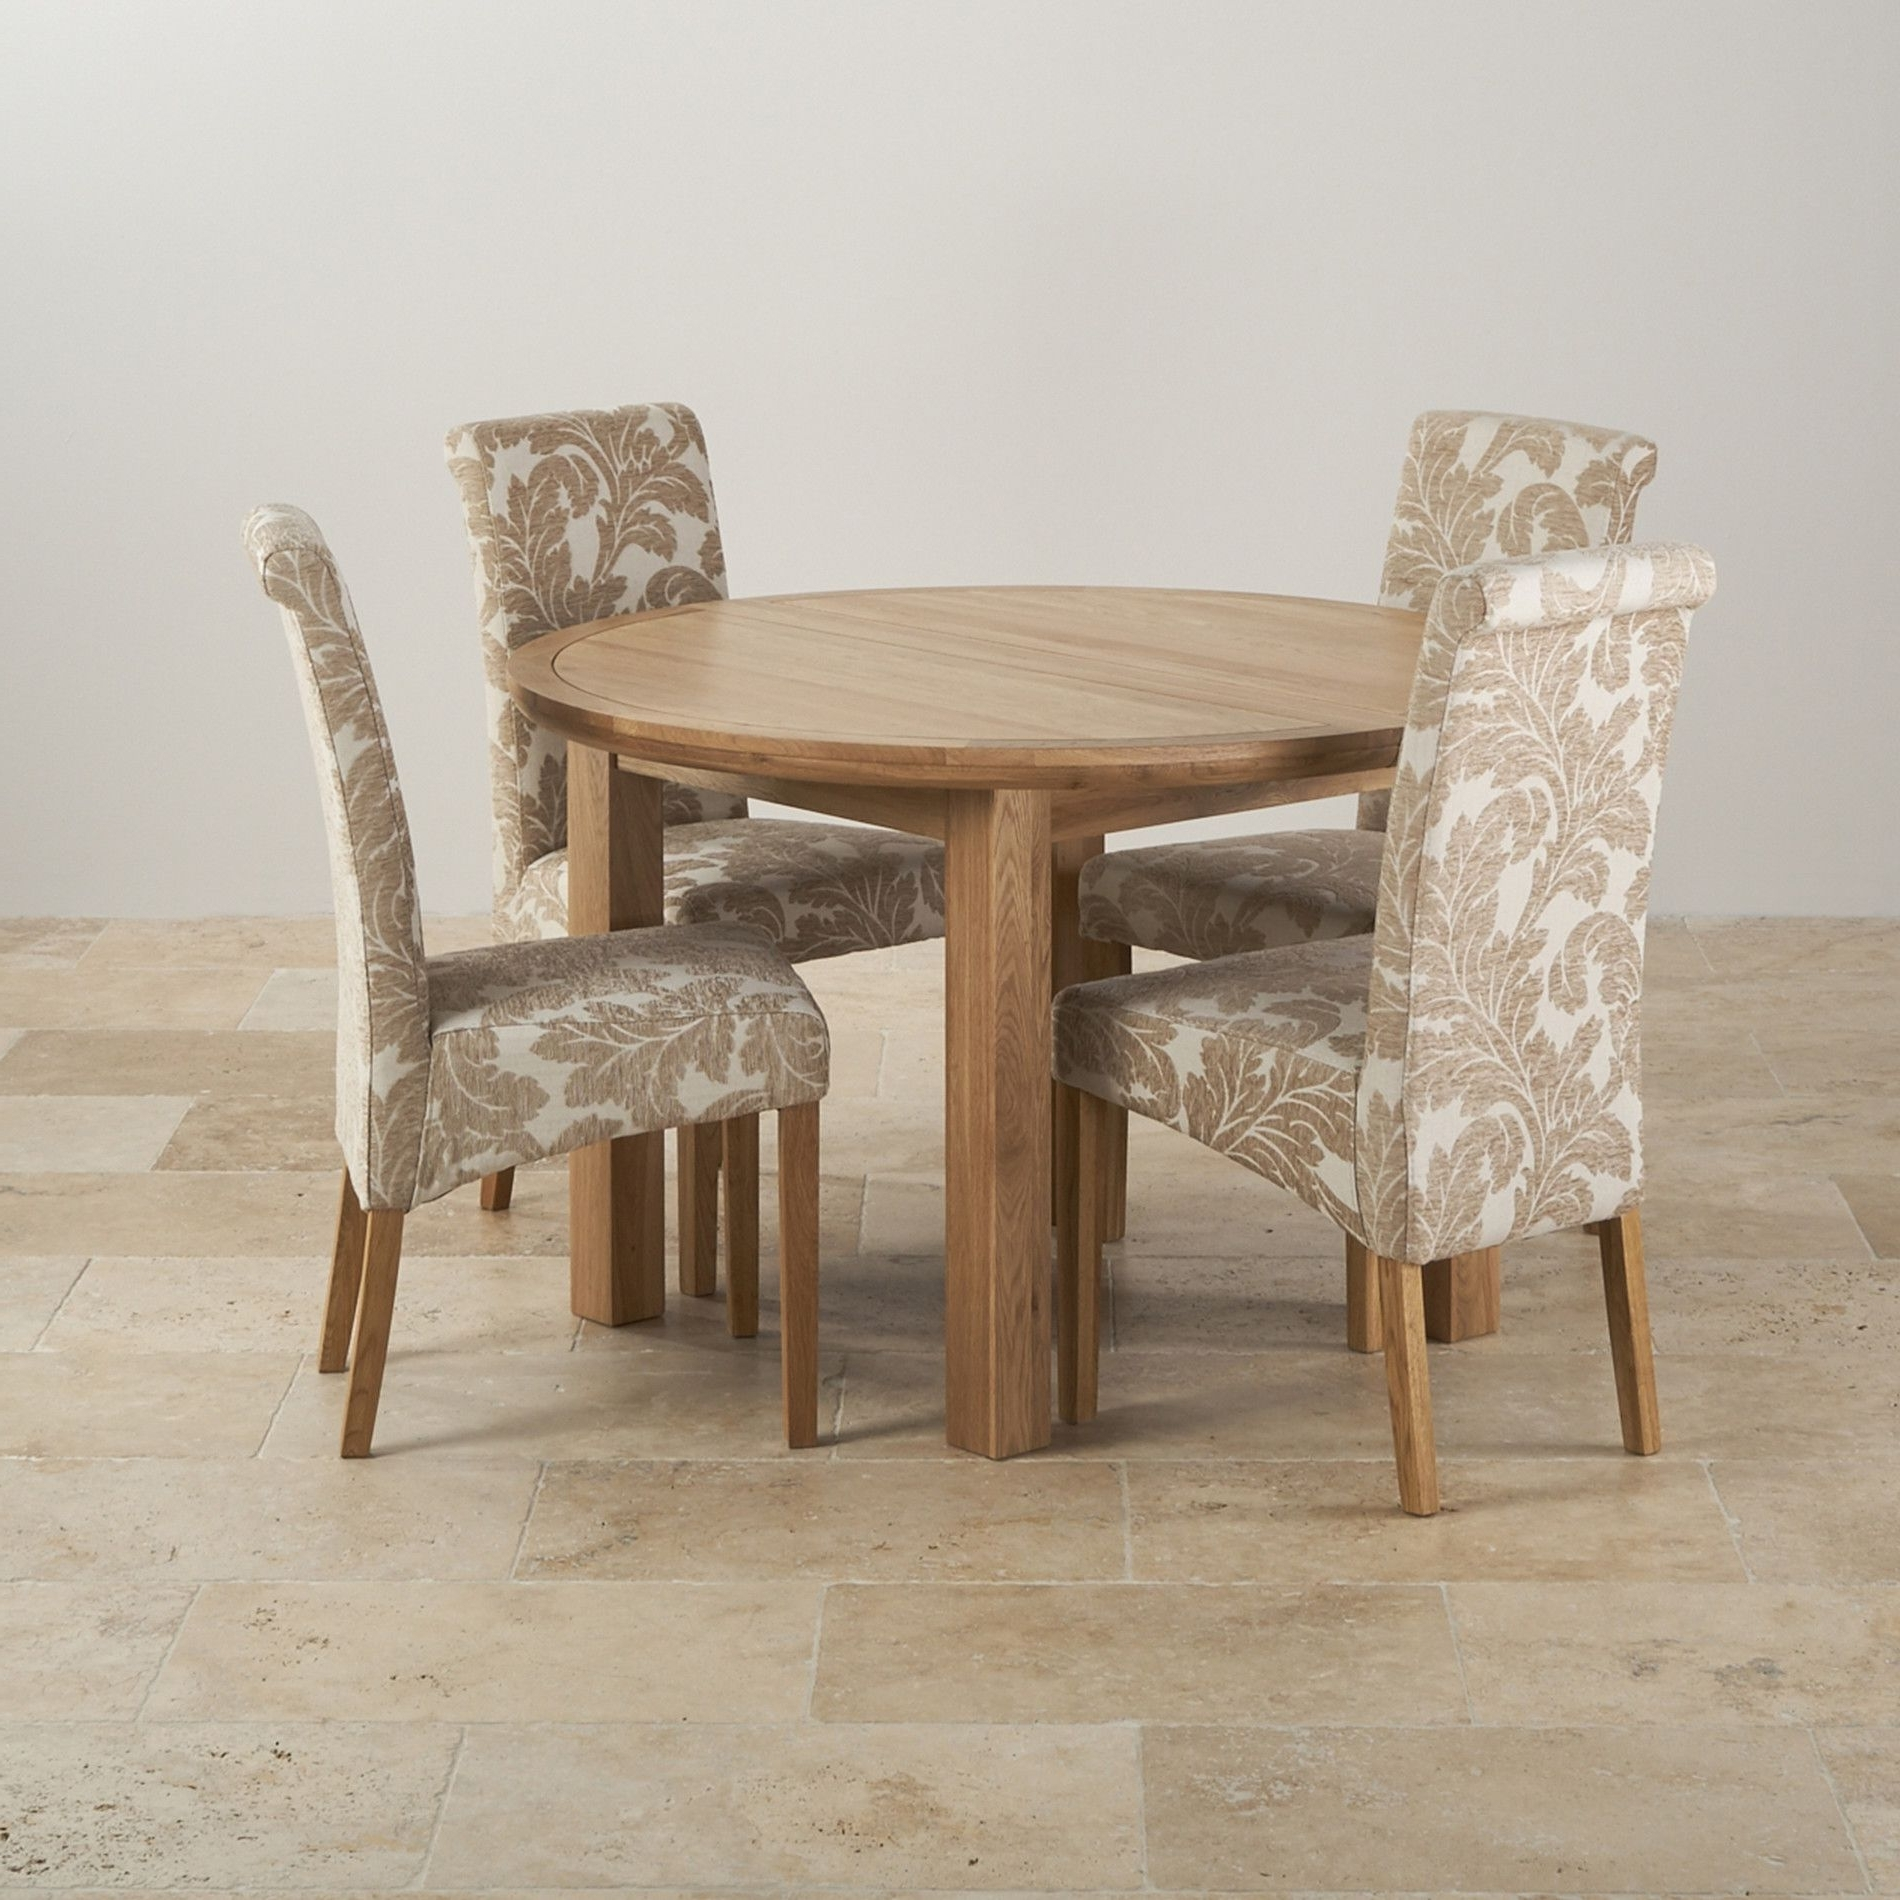 Round Oak Dining Tables And 4 Chairs Throughout Preferred Knightsbridge Natural Oak Dining Set – 4Ft Round Extending Table &  (View 19 of 25)